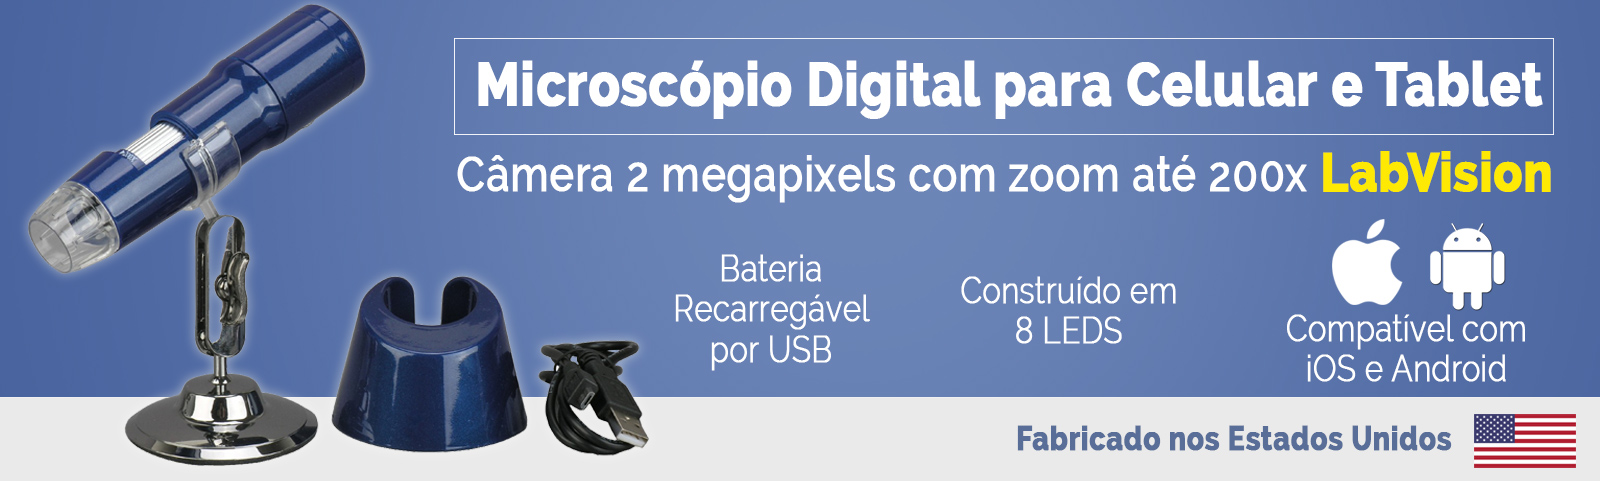 Microscópio Portatil Digital para Tablet e Celular